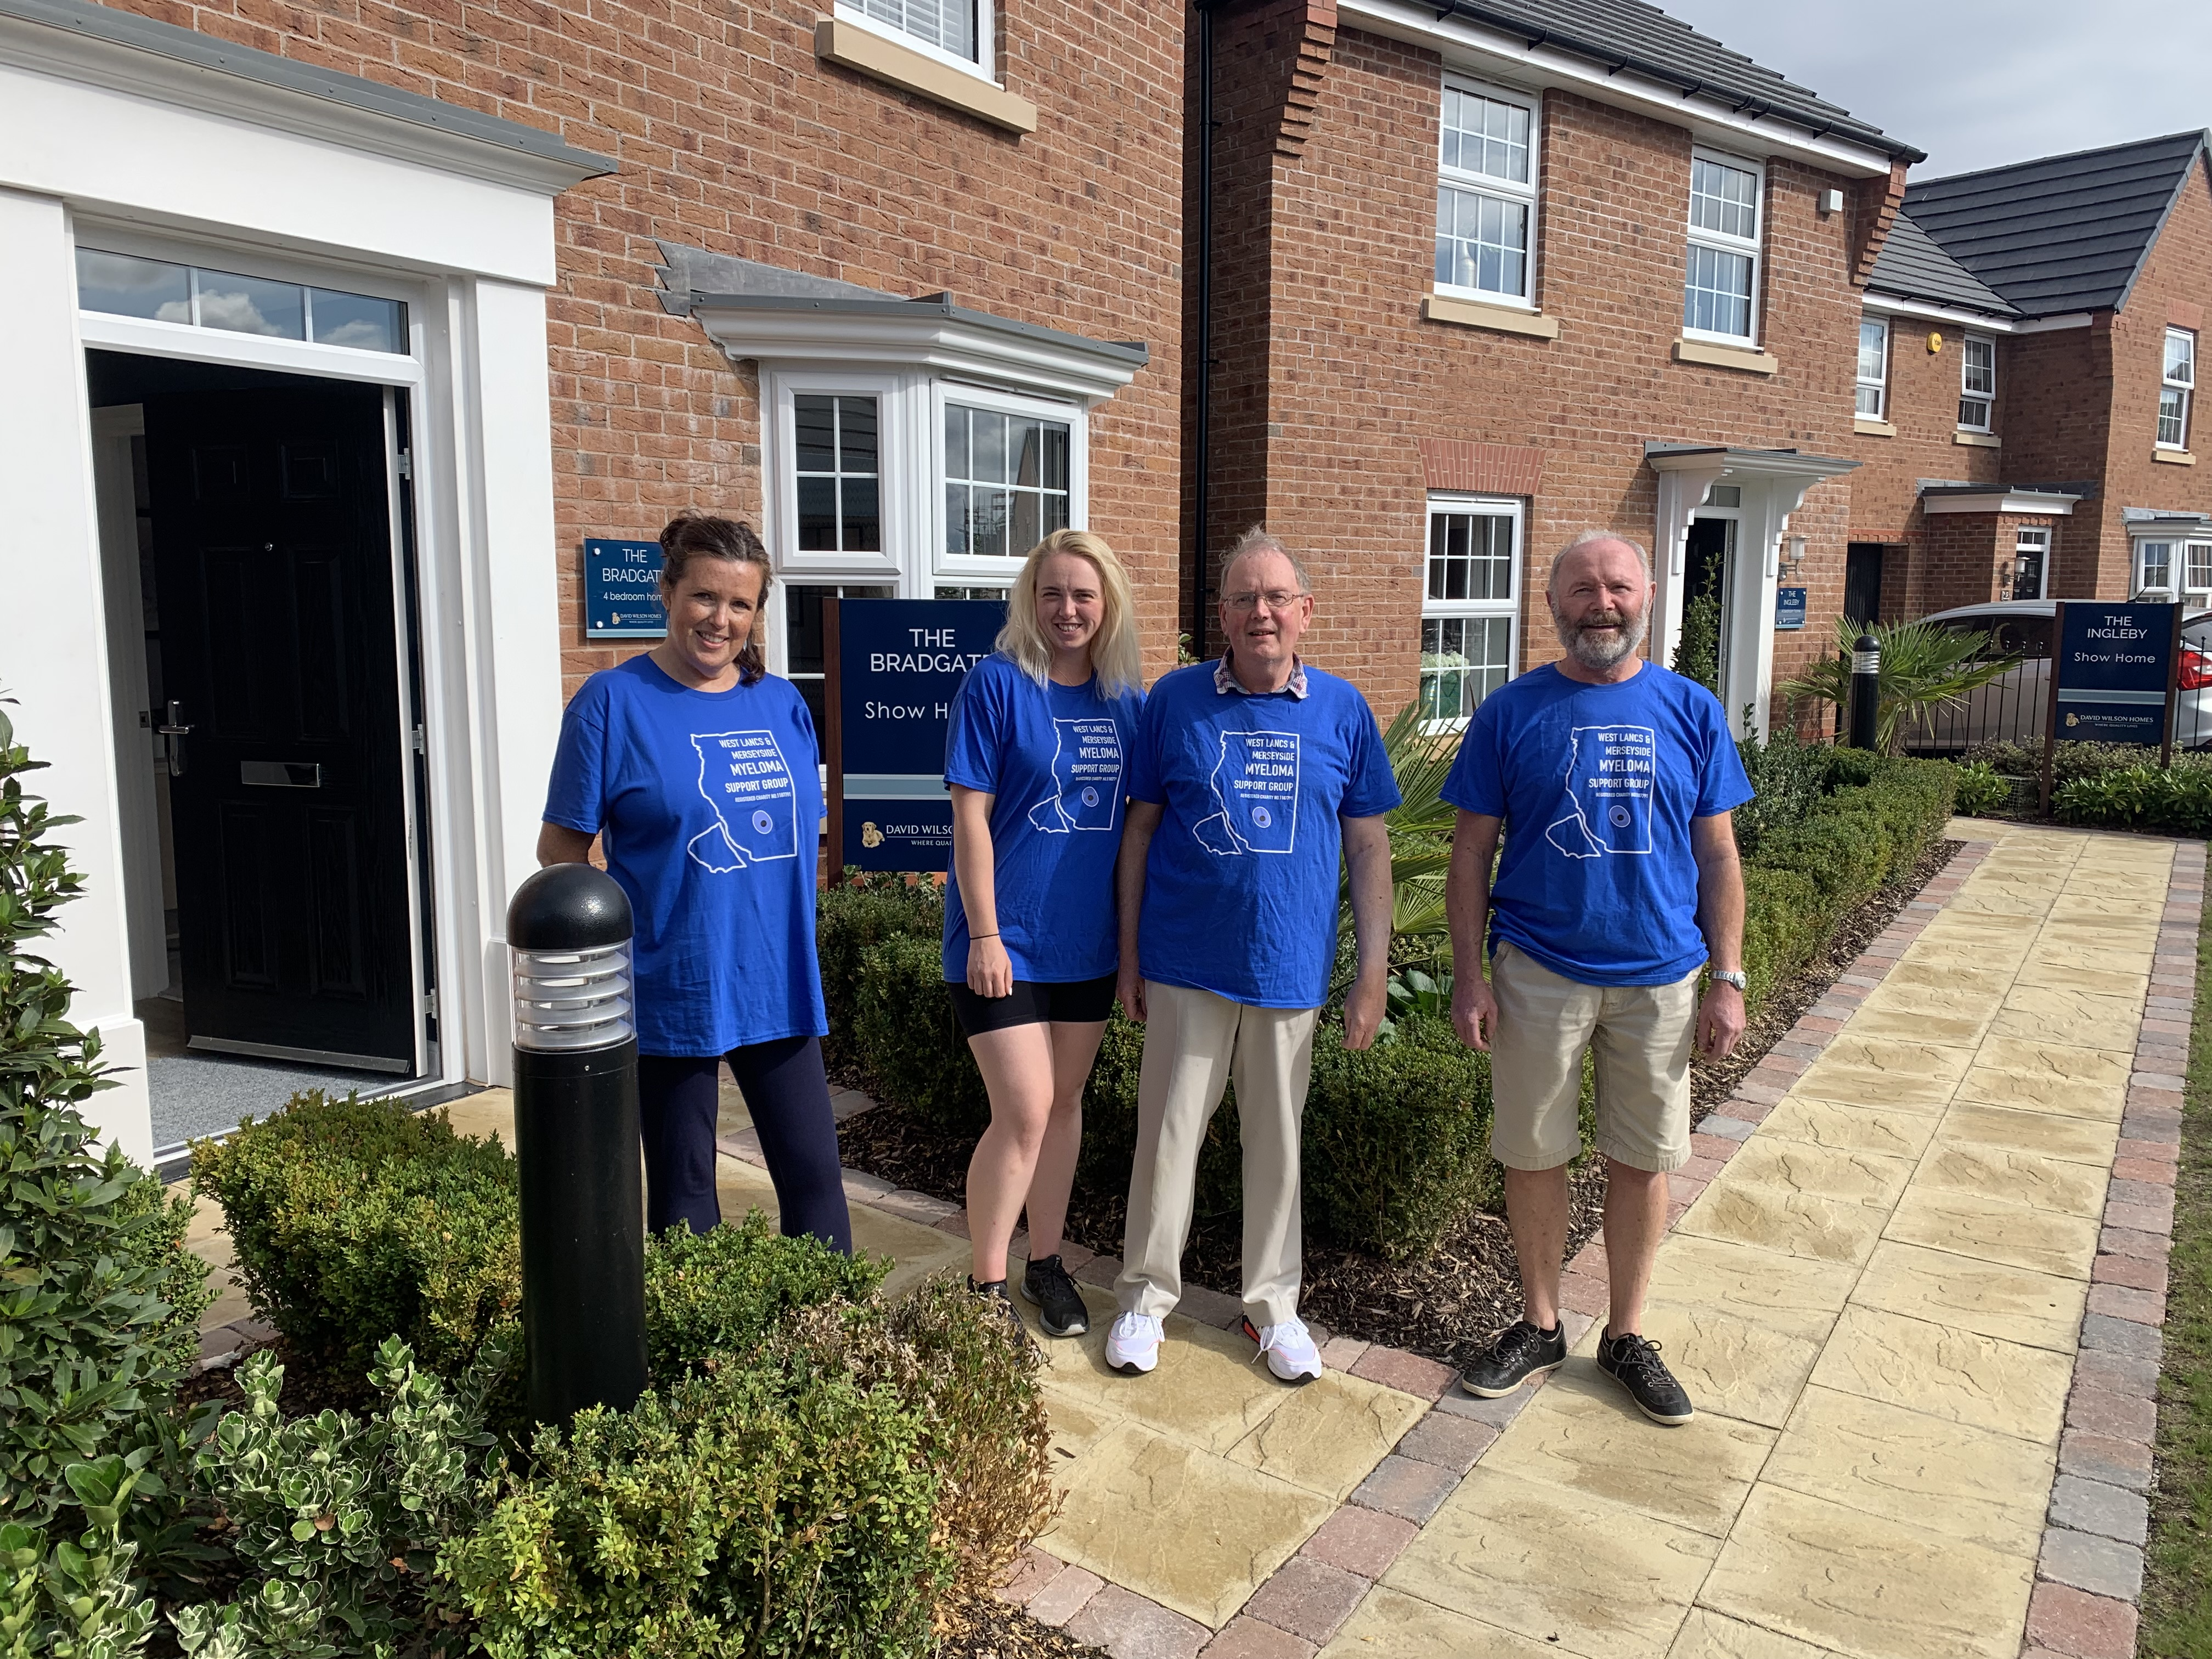 Myeloma Support Group gets £1,000 donations from David Wilson homes